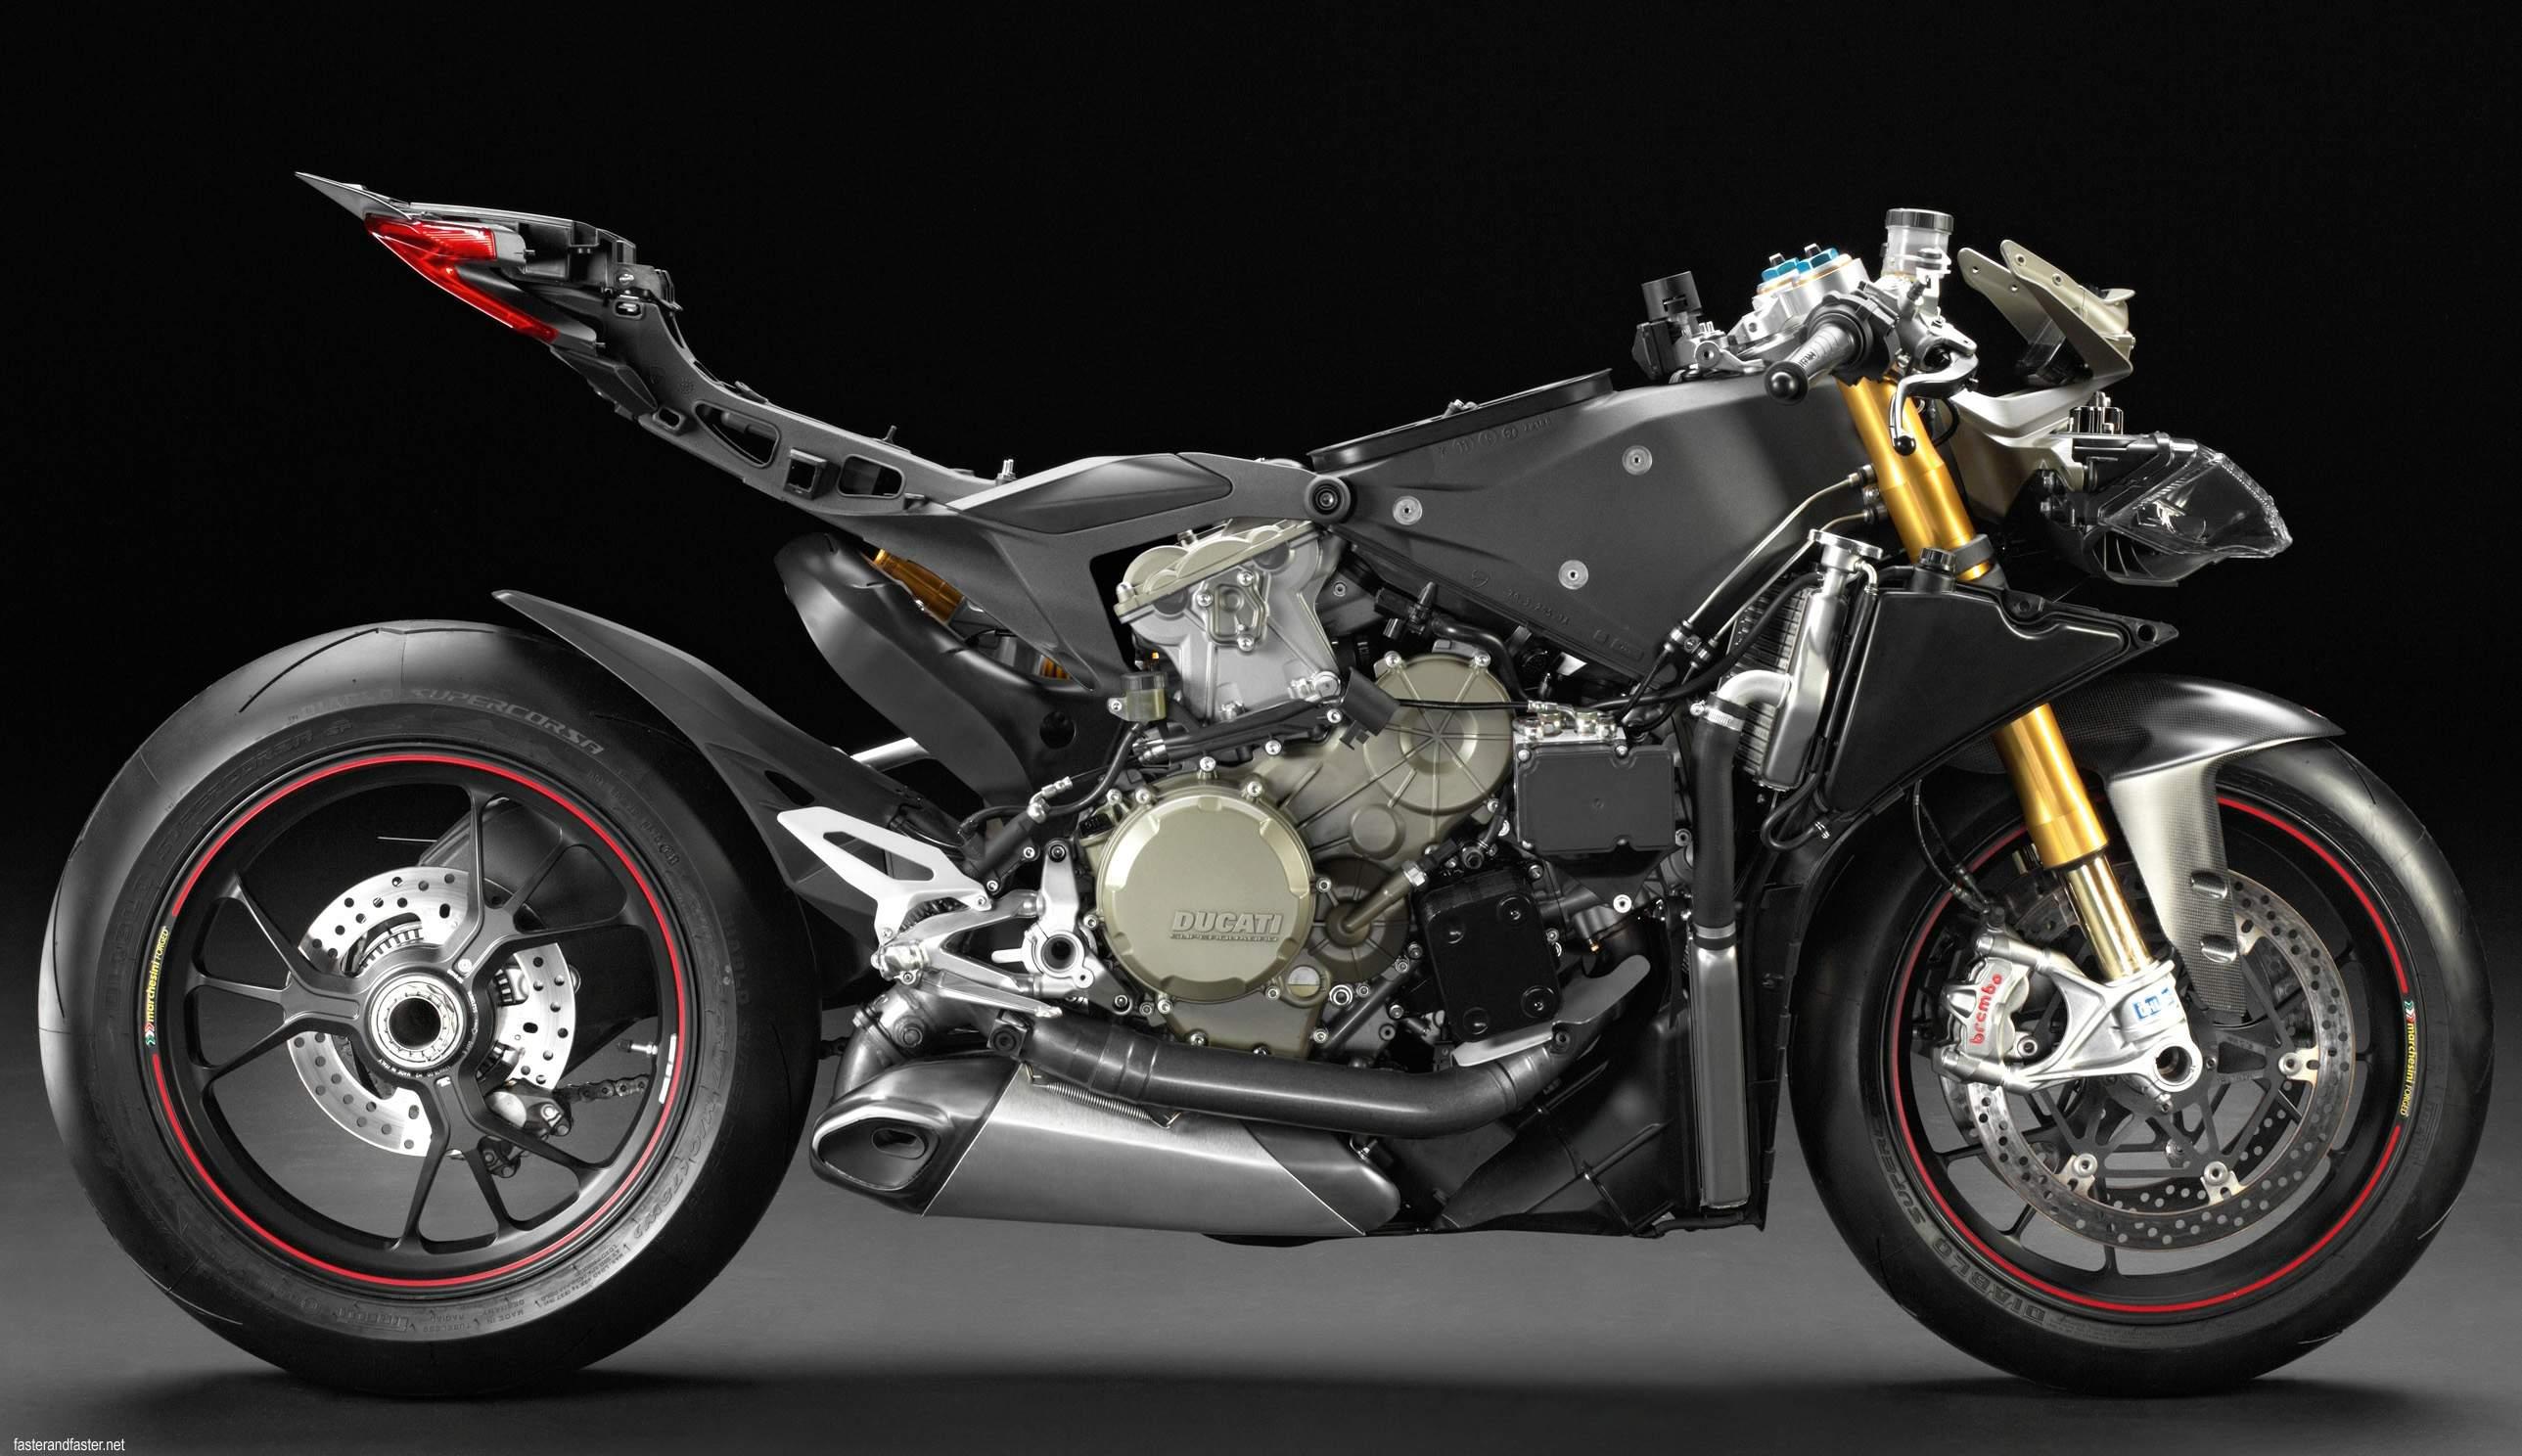 ducati rumored to ditch the superquadro engine and replace it with